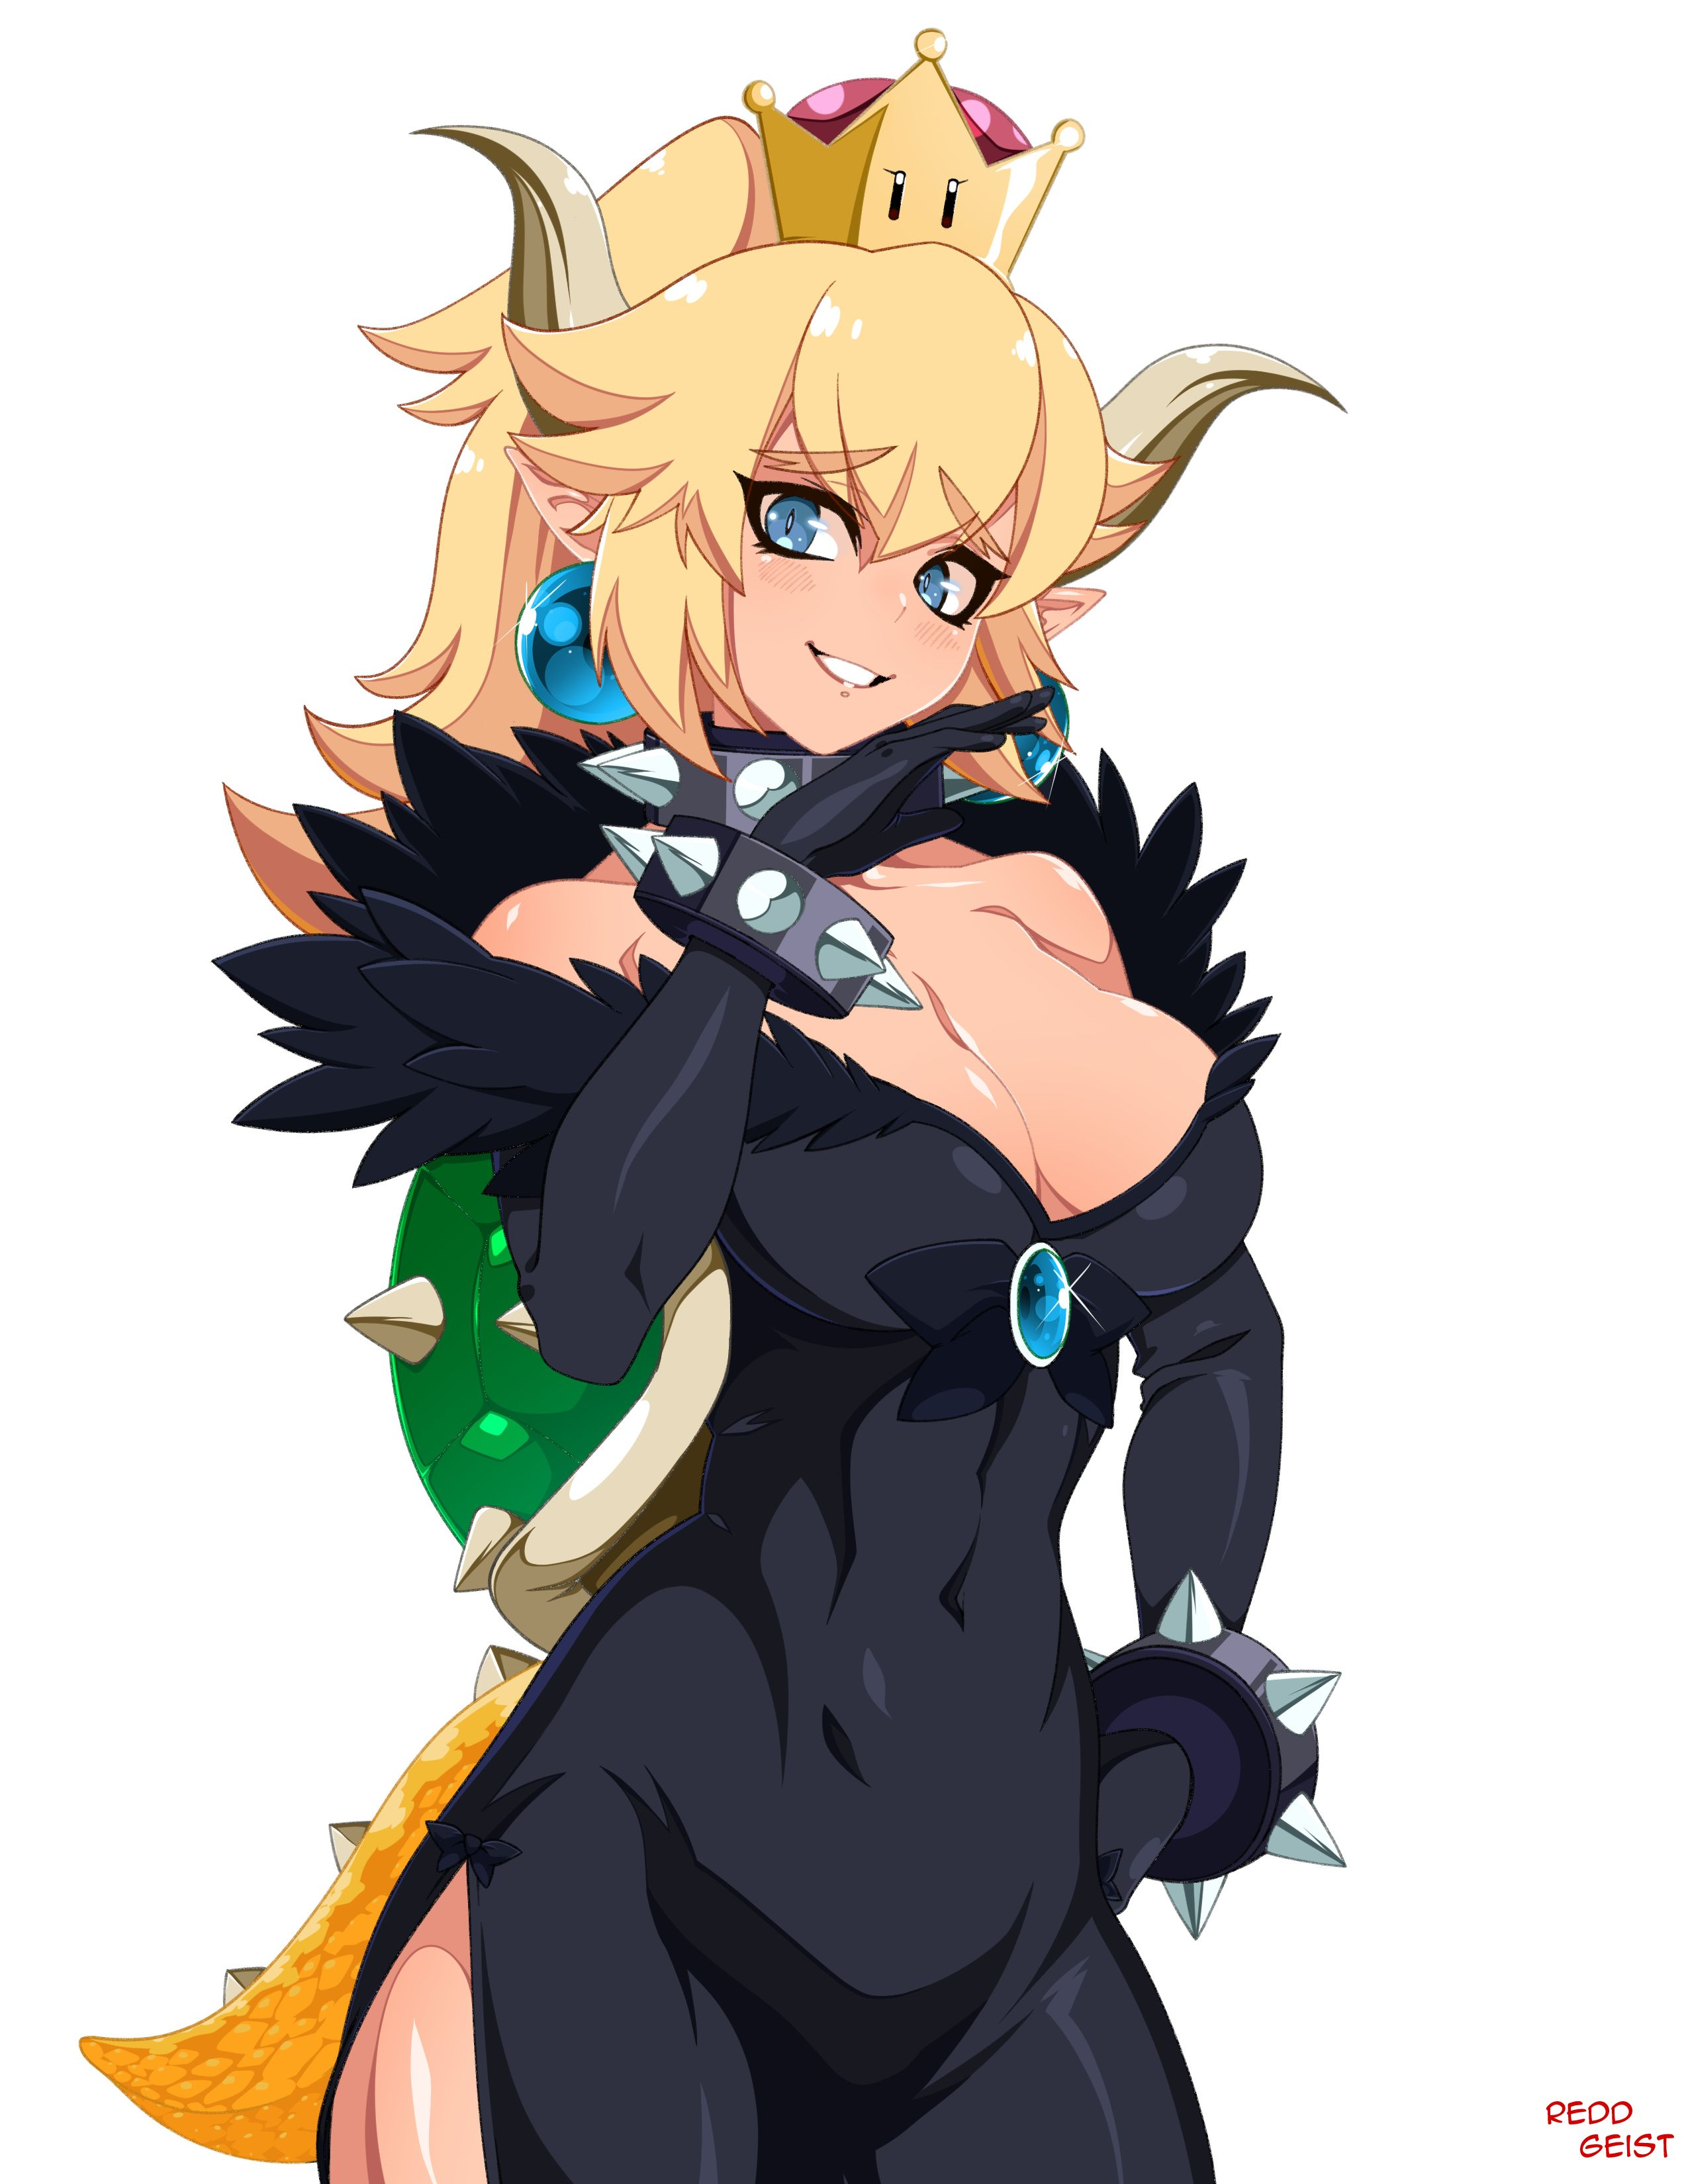 Pin By El Momero On Bowsette Anime Character Art Anime Art